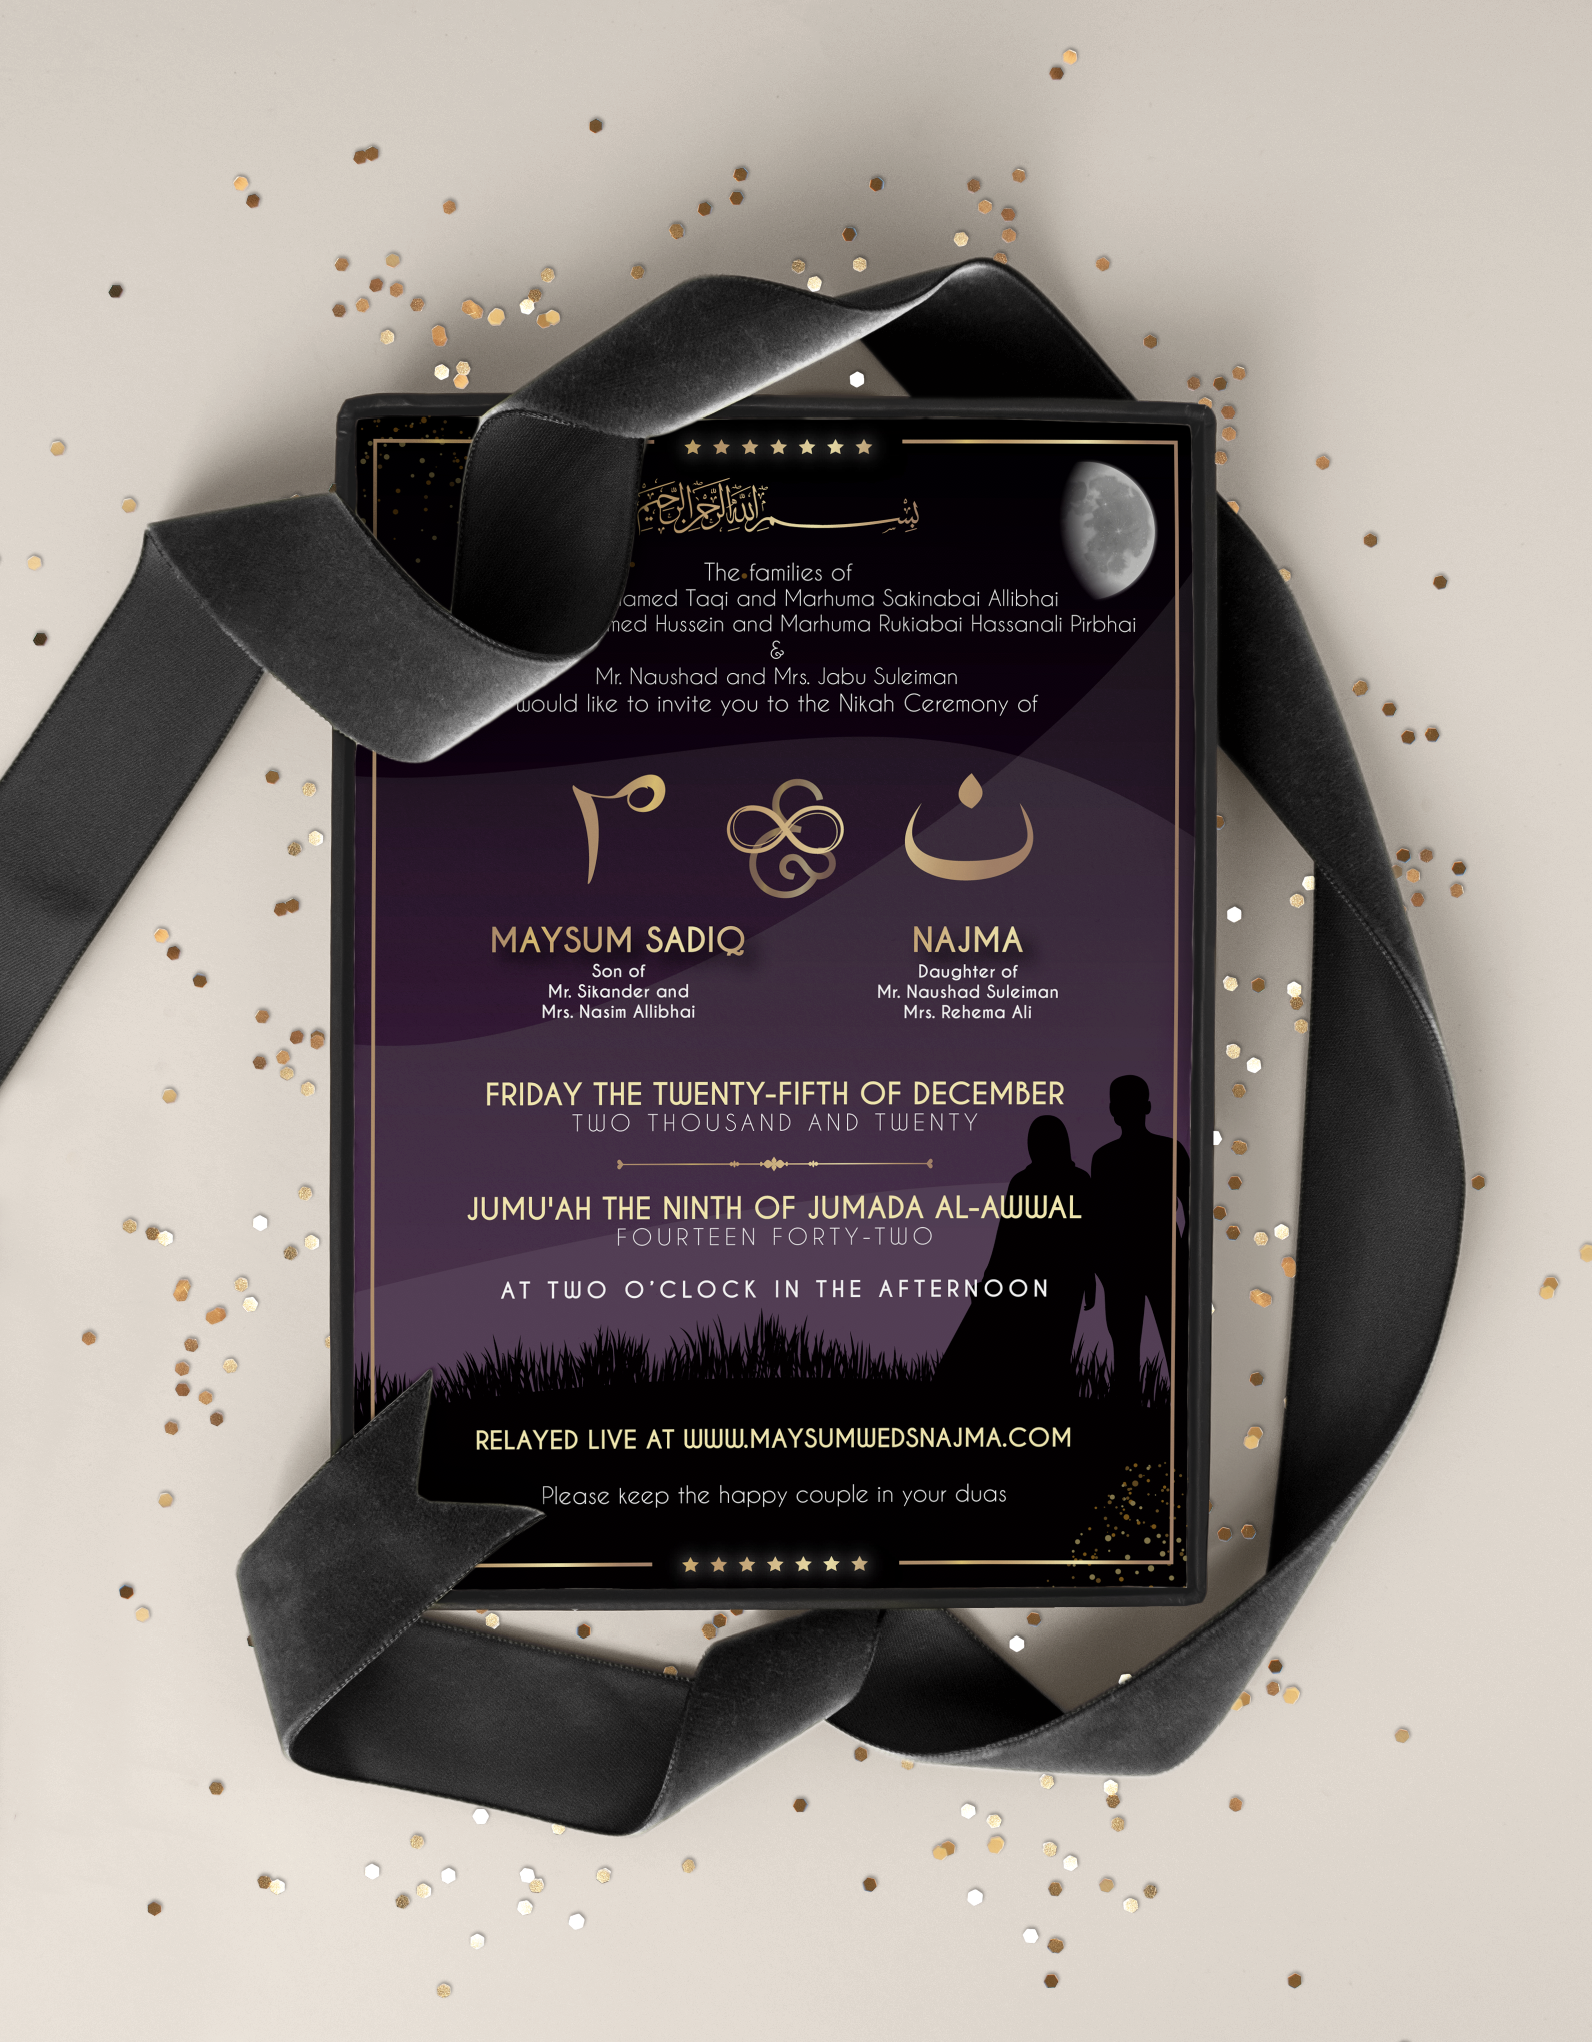 Maysum Sadiq Weds Najma – Wedding Invitation